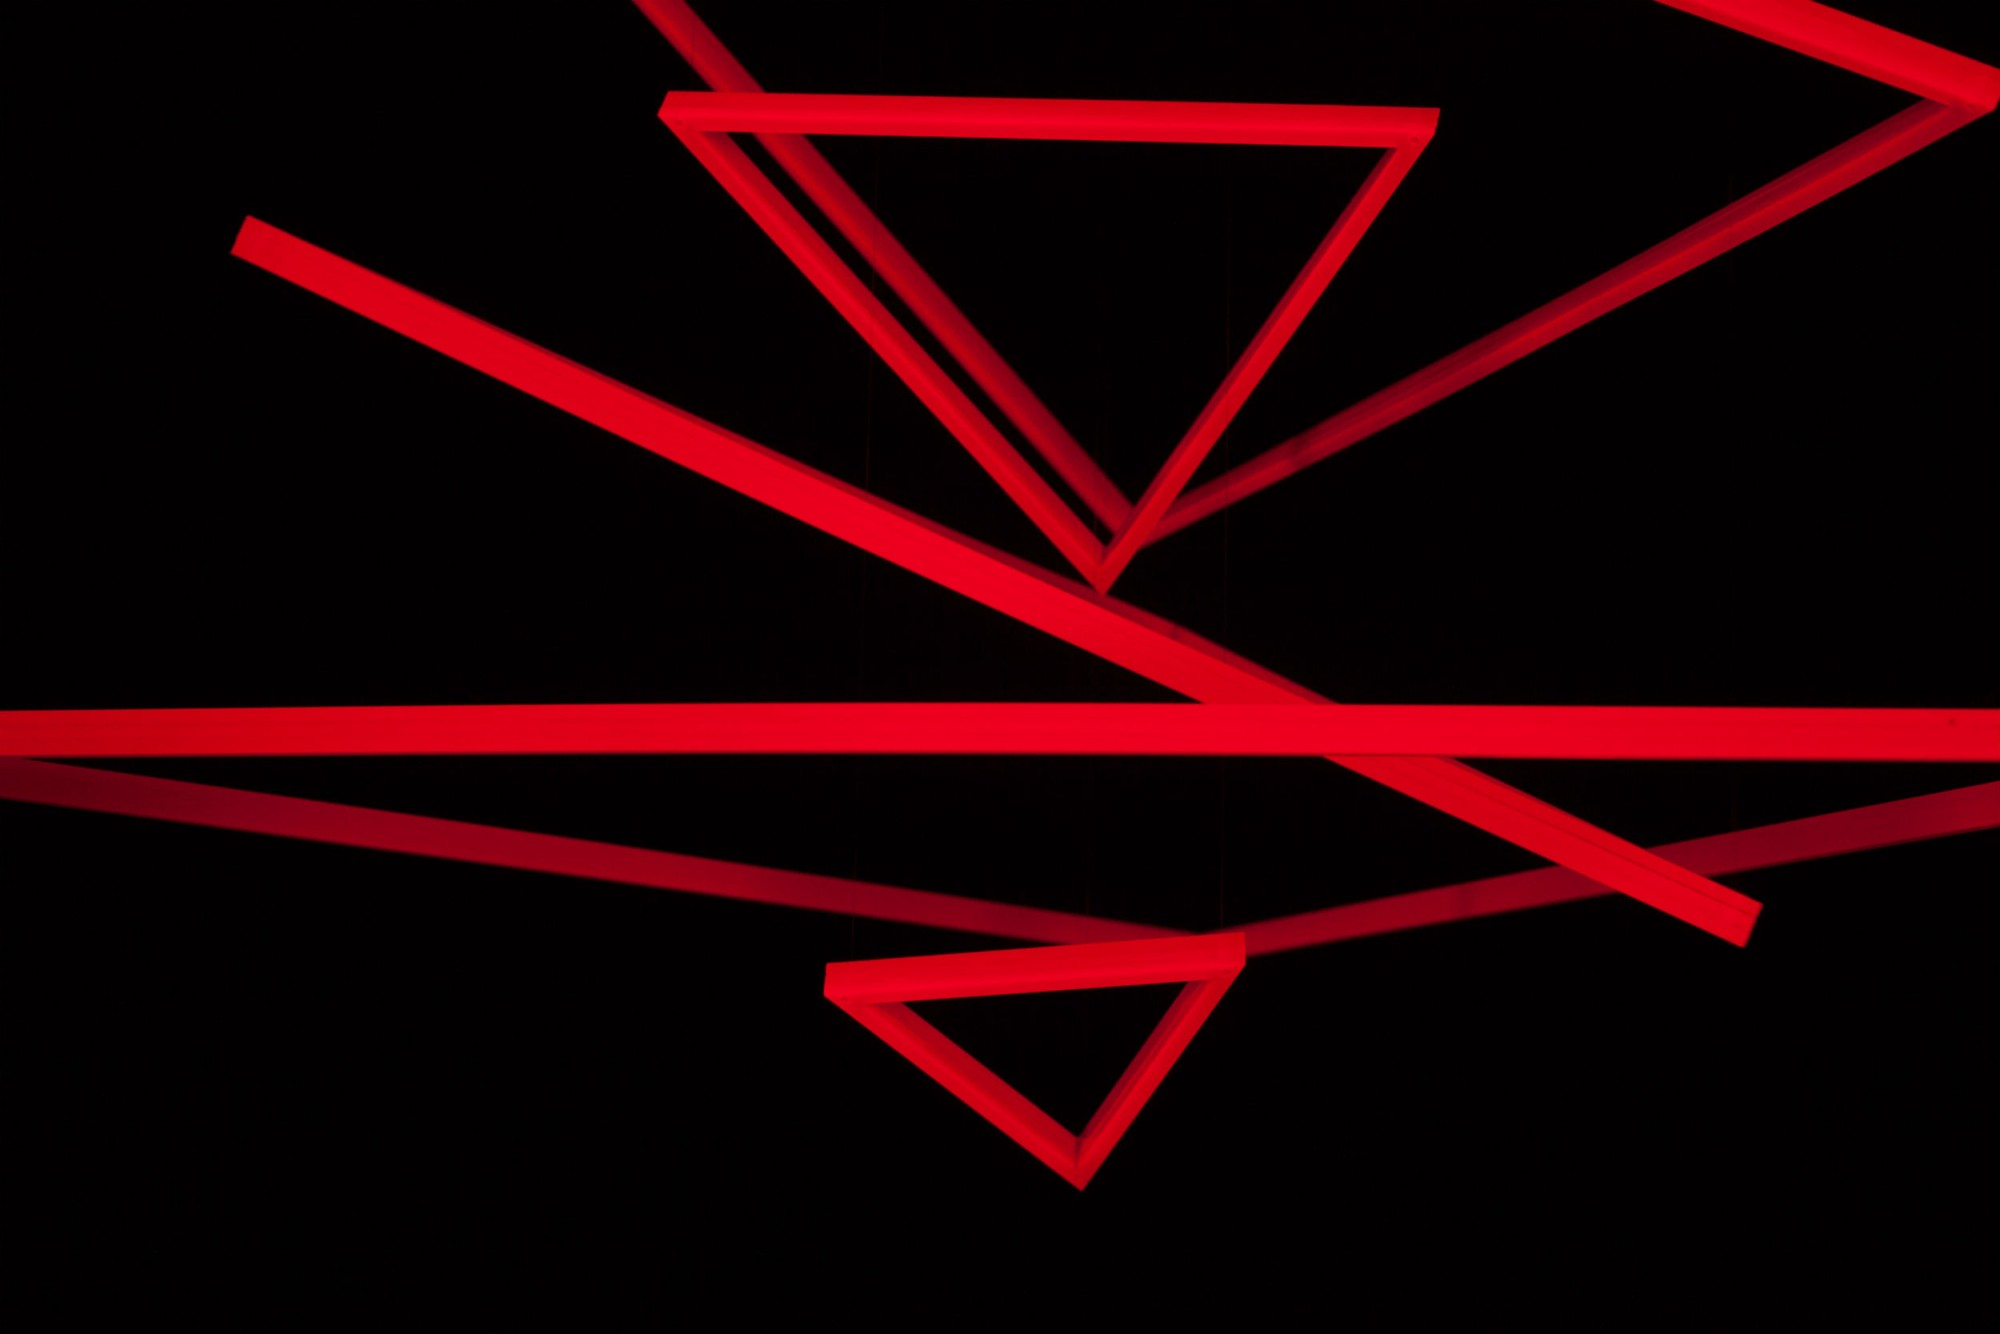 Trianguconcentricos_Rouge_Fluo_4.jpg